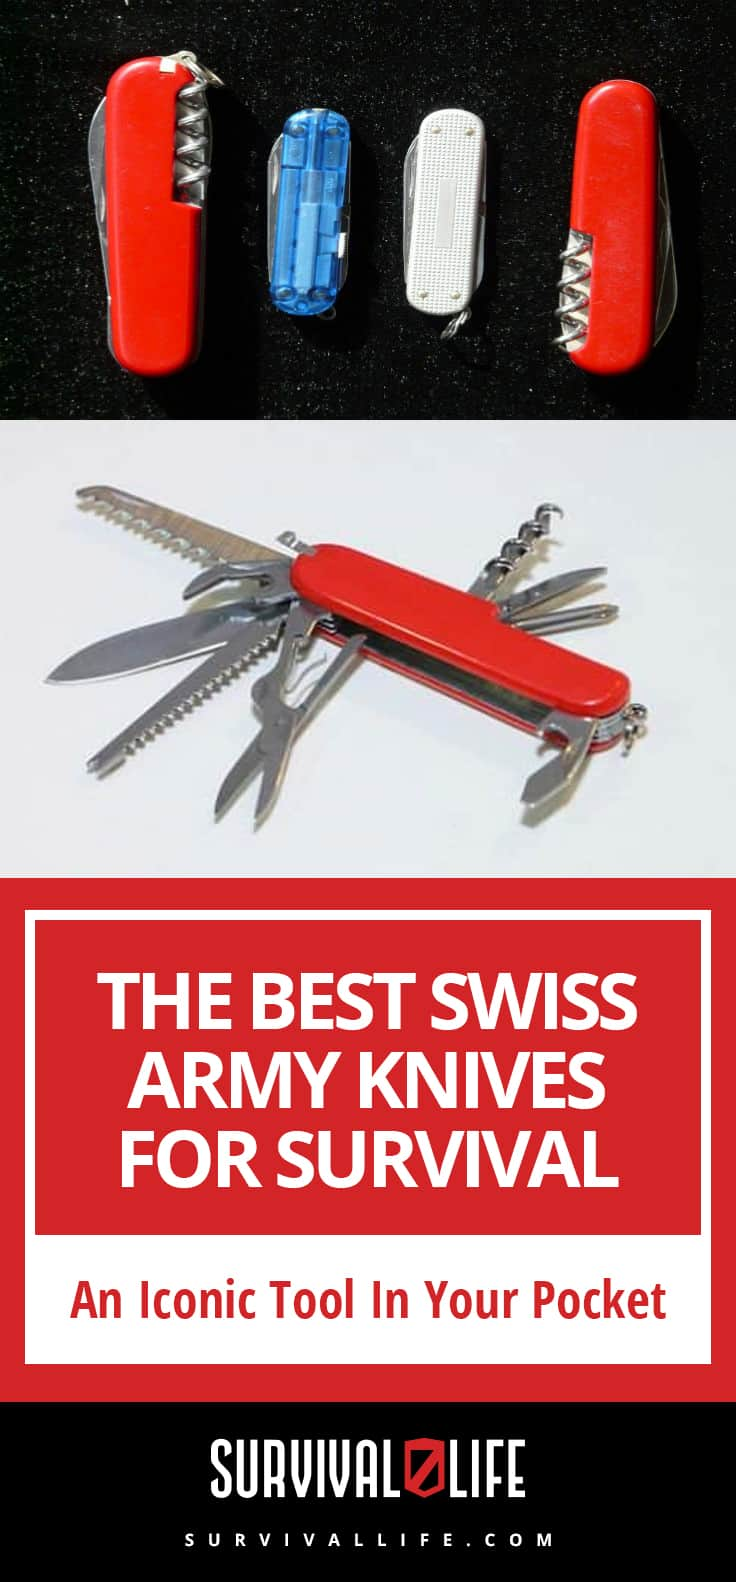 The Best Swiss Army Knives For Survival | An Iconic Tool In Your Pocket